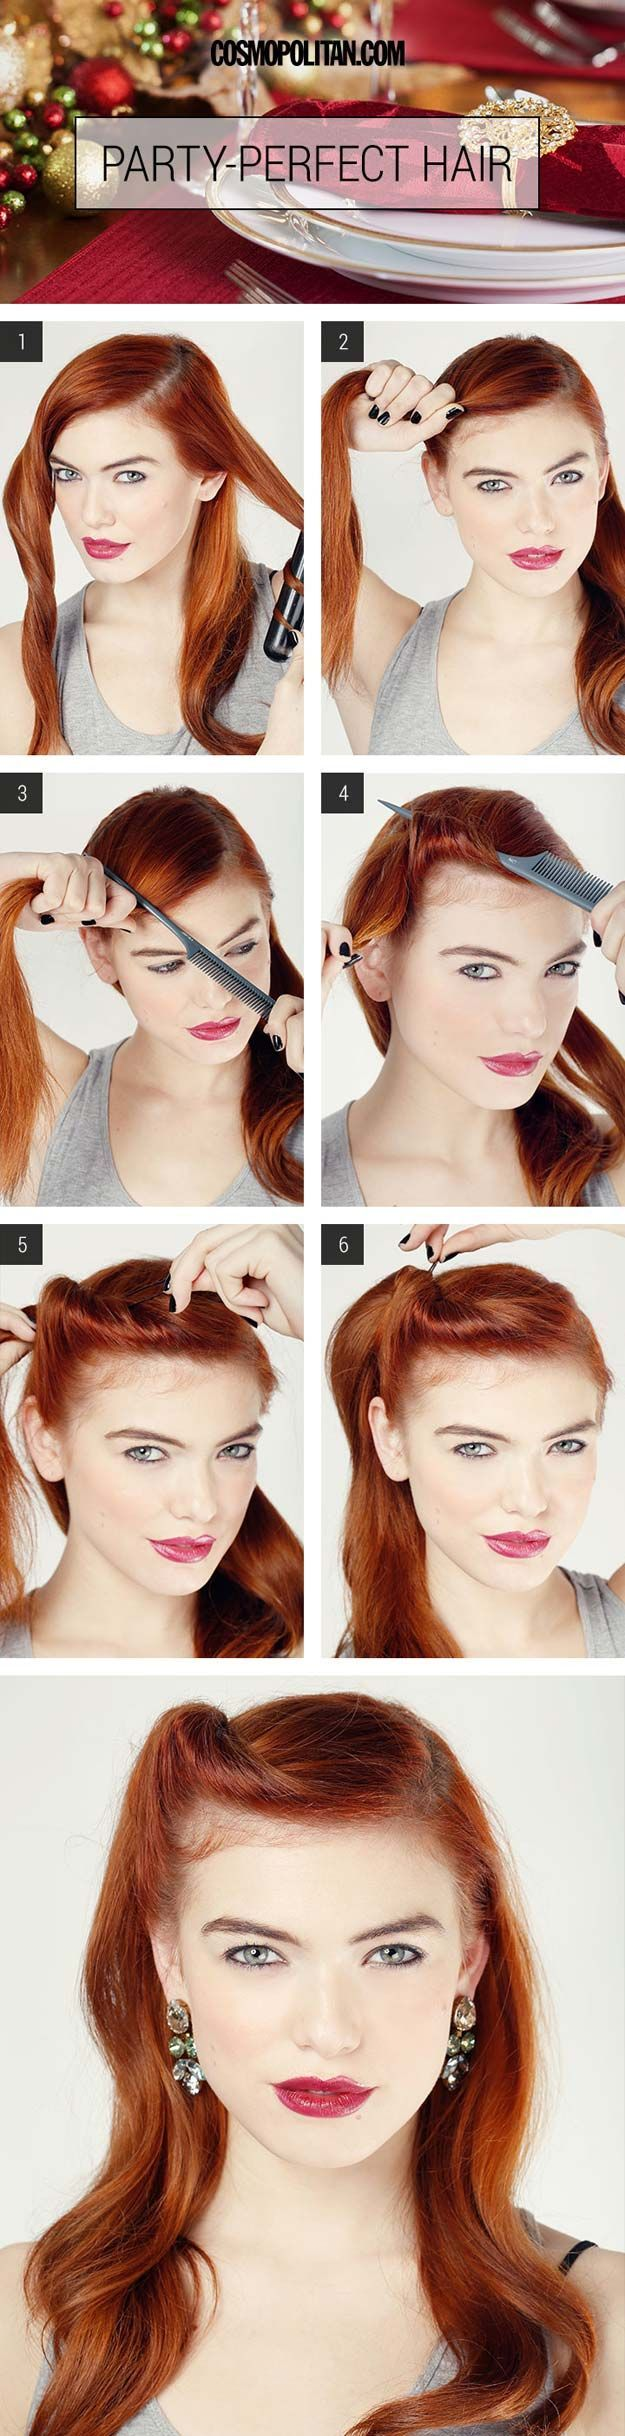 Cool and Easy DIY Hairstyles - Party-Perfect Glam Roll - Quick and Easy Ideas… #diyhairstylesquick